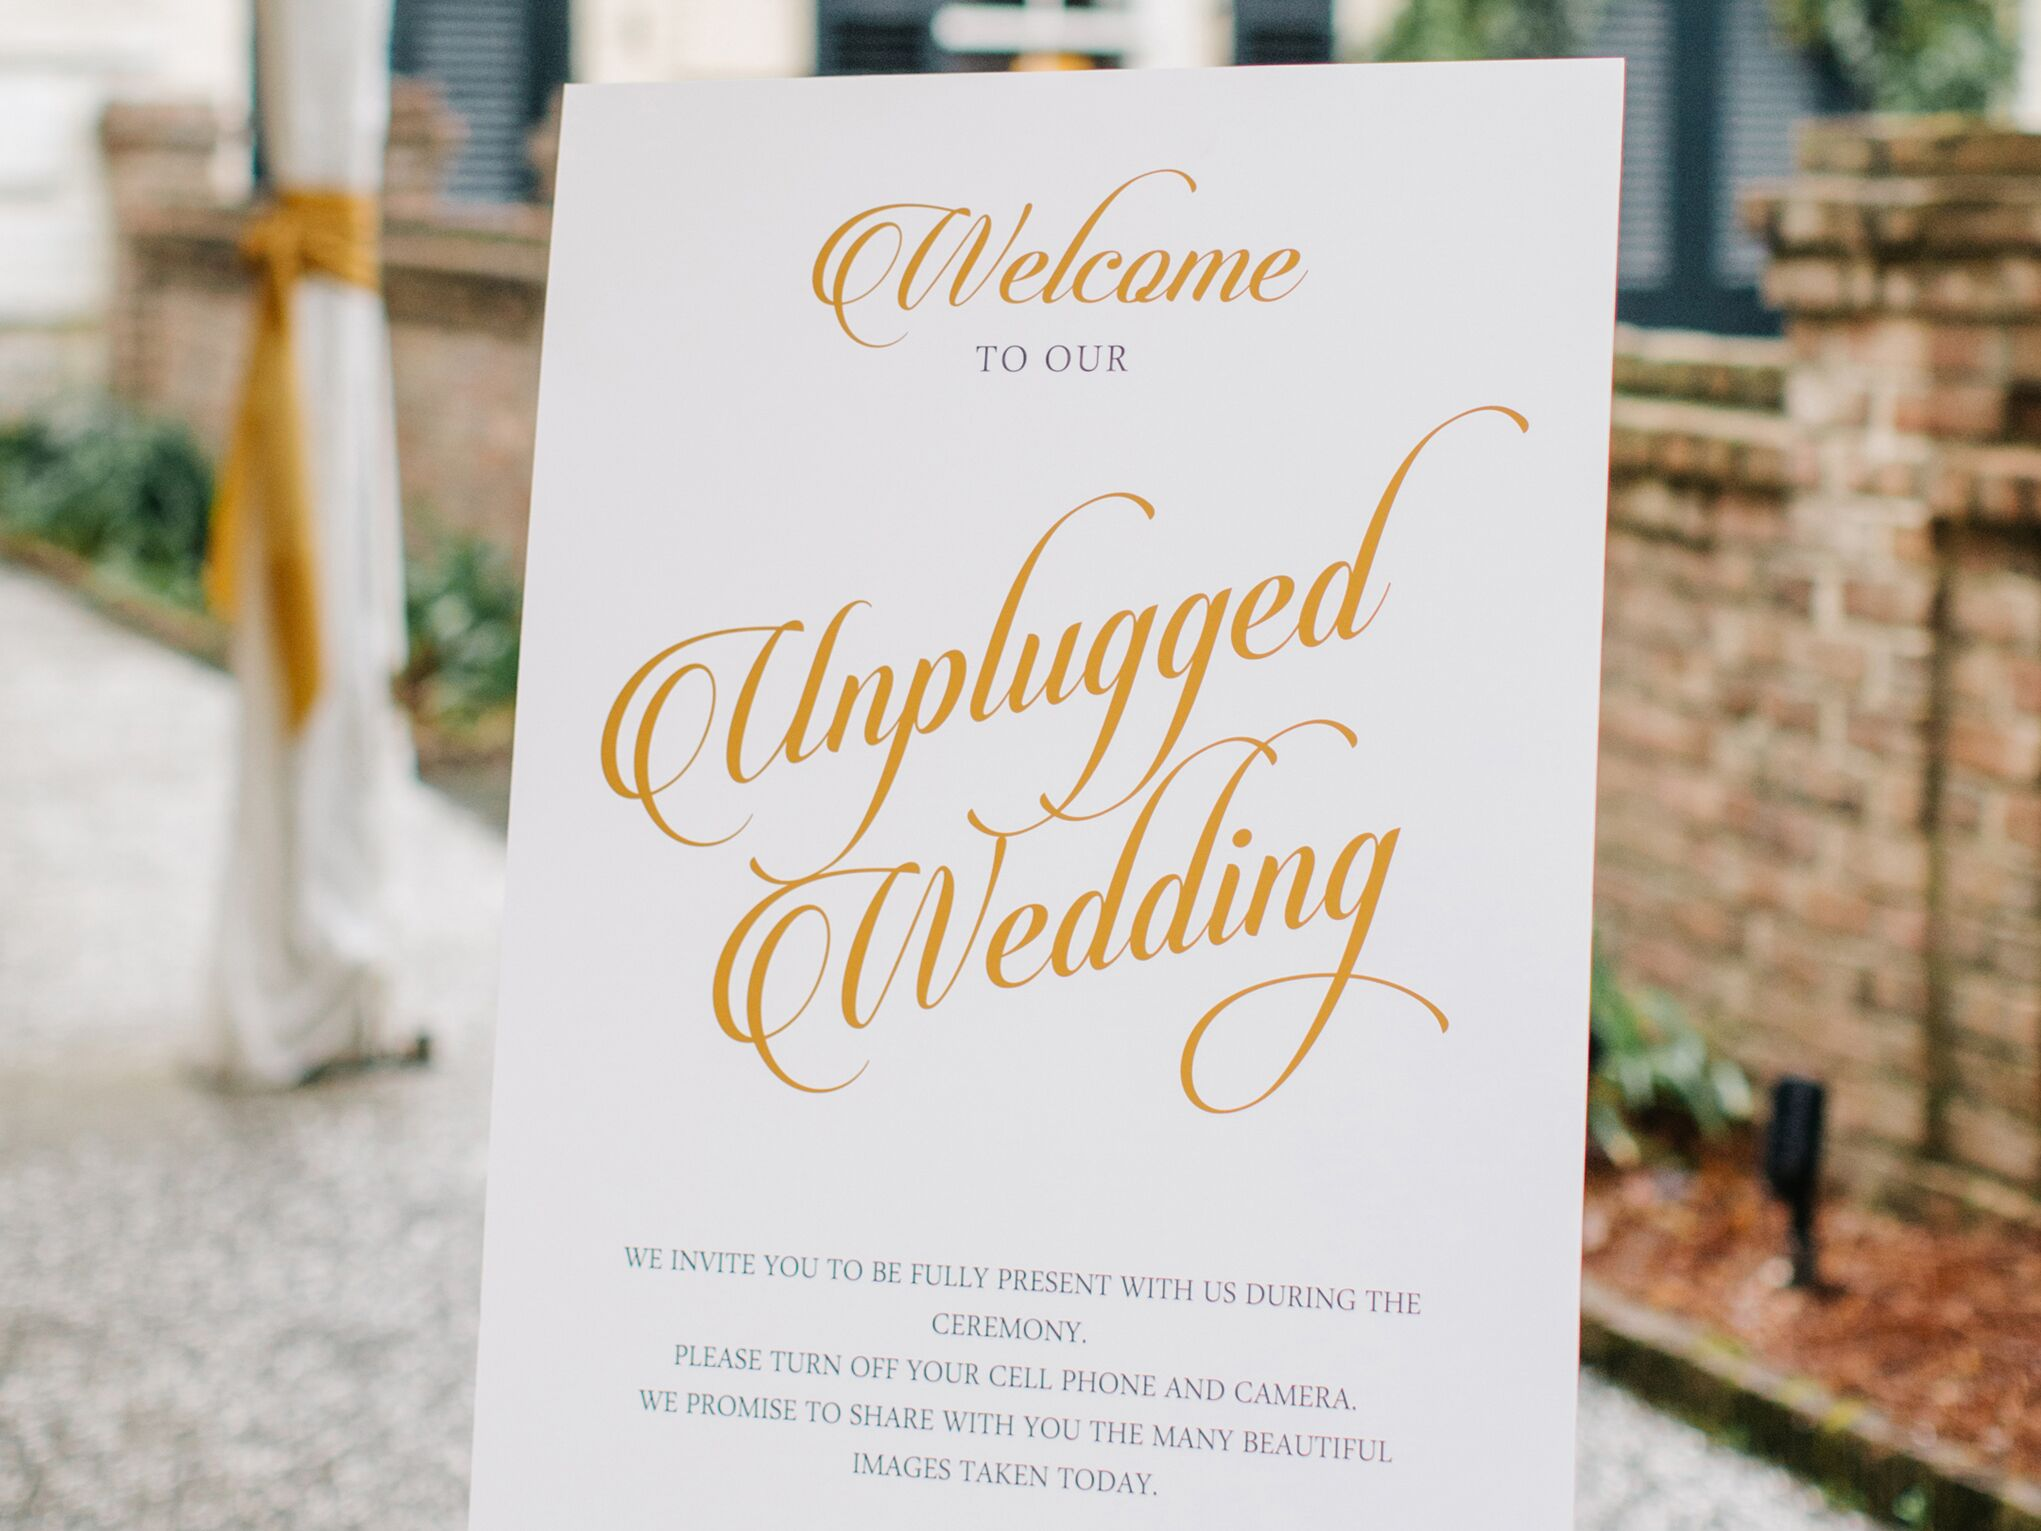 Wedding Gifts Etiquette Rules : photo by Shannon Michele Photography